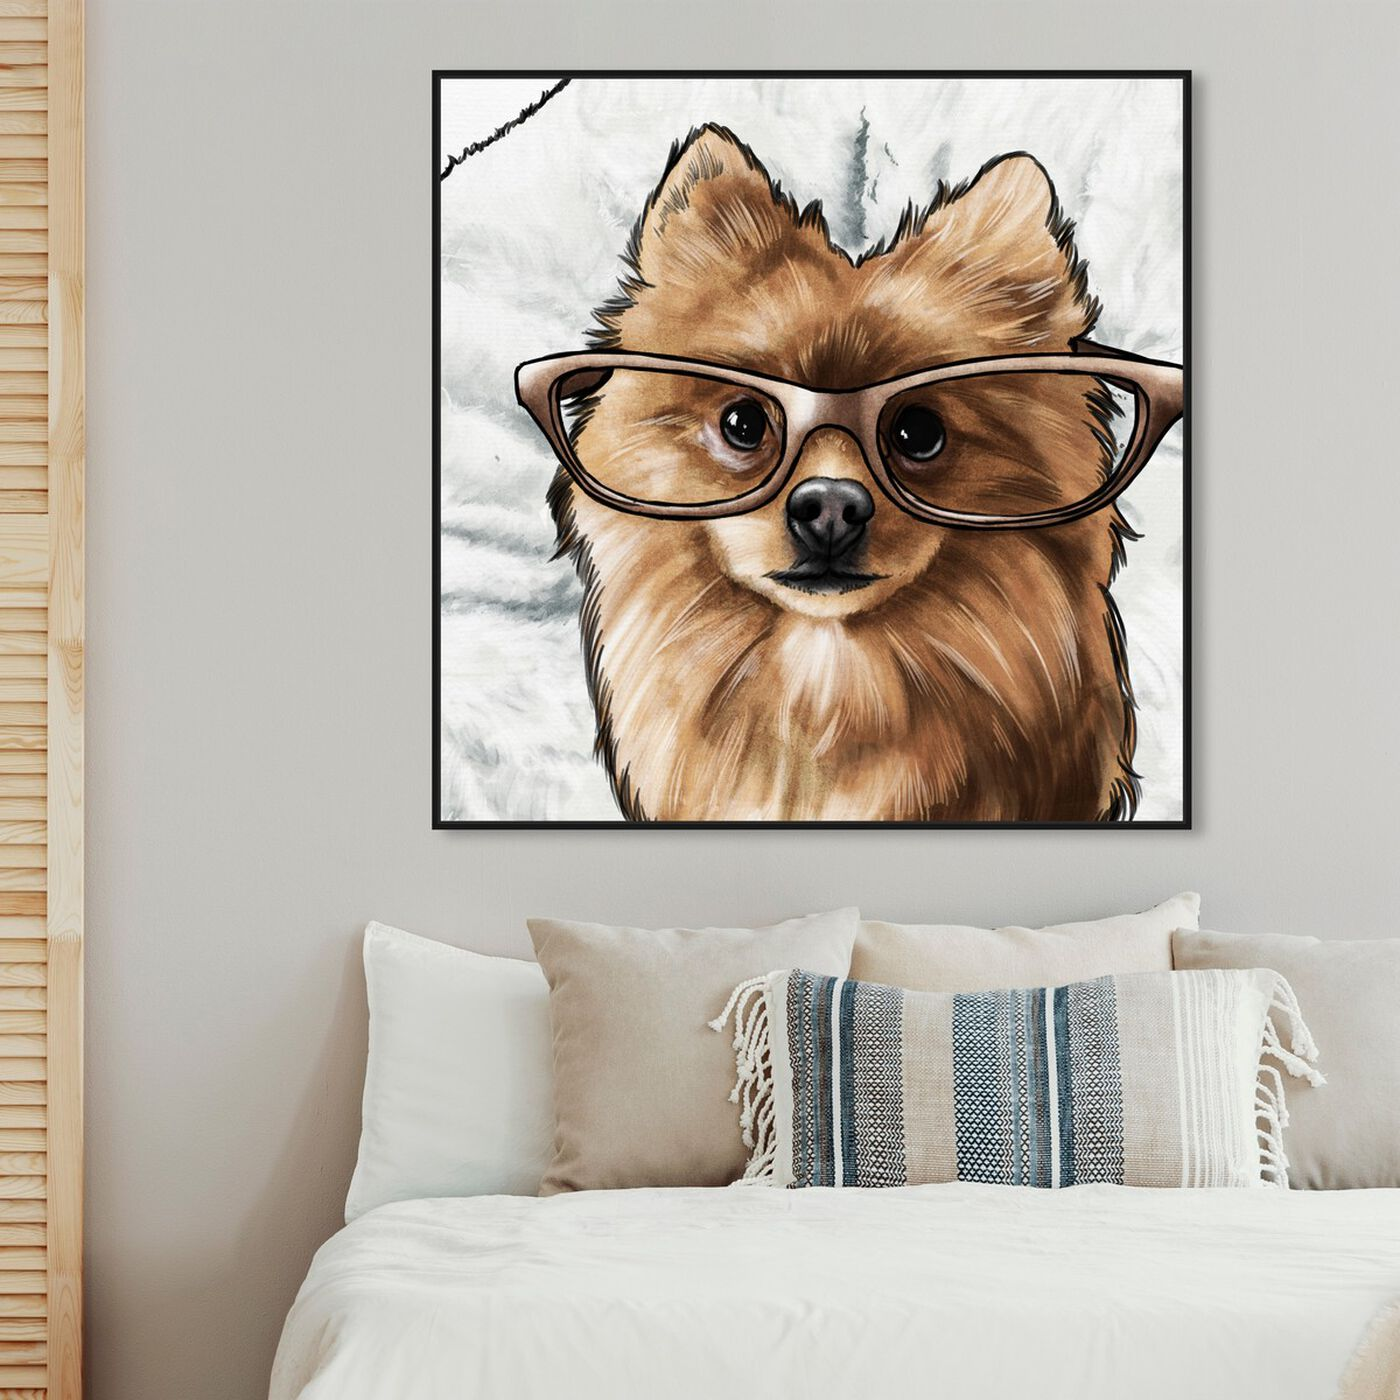 Hanging view of Glasses and Fluff II featuring animals and dogs and puppies art.